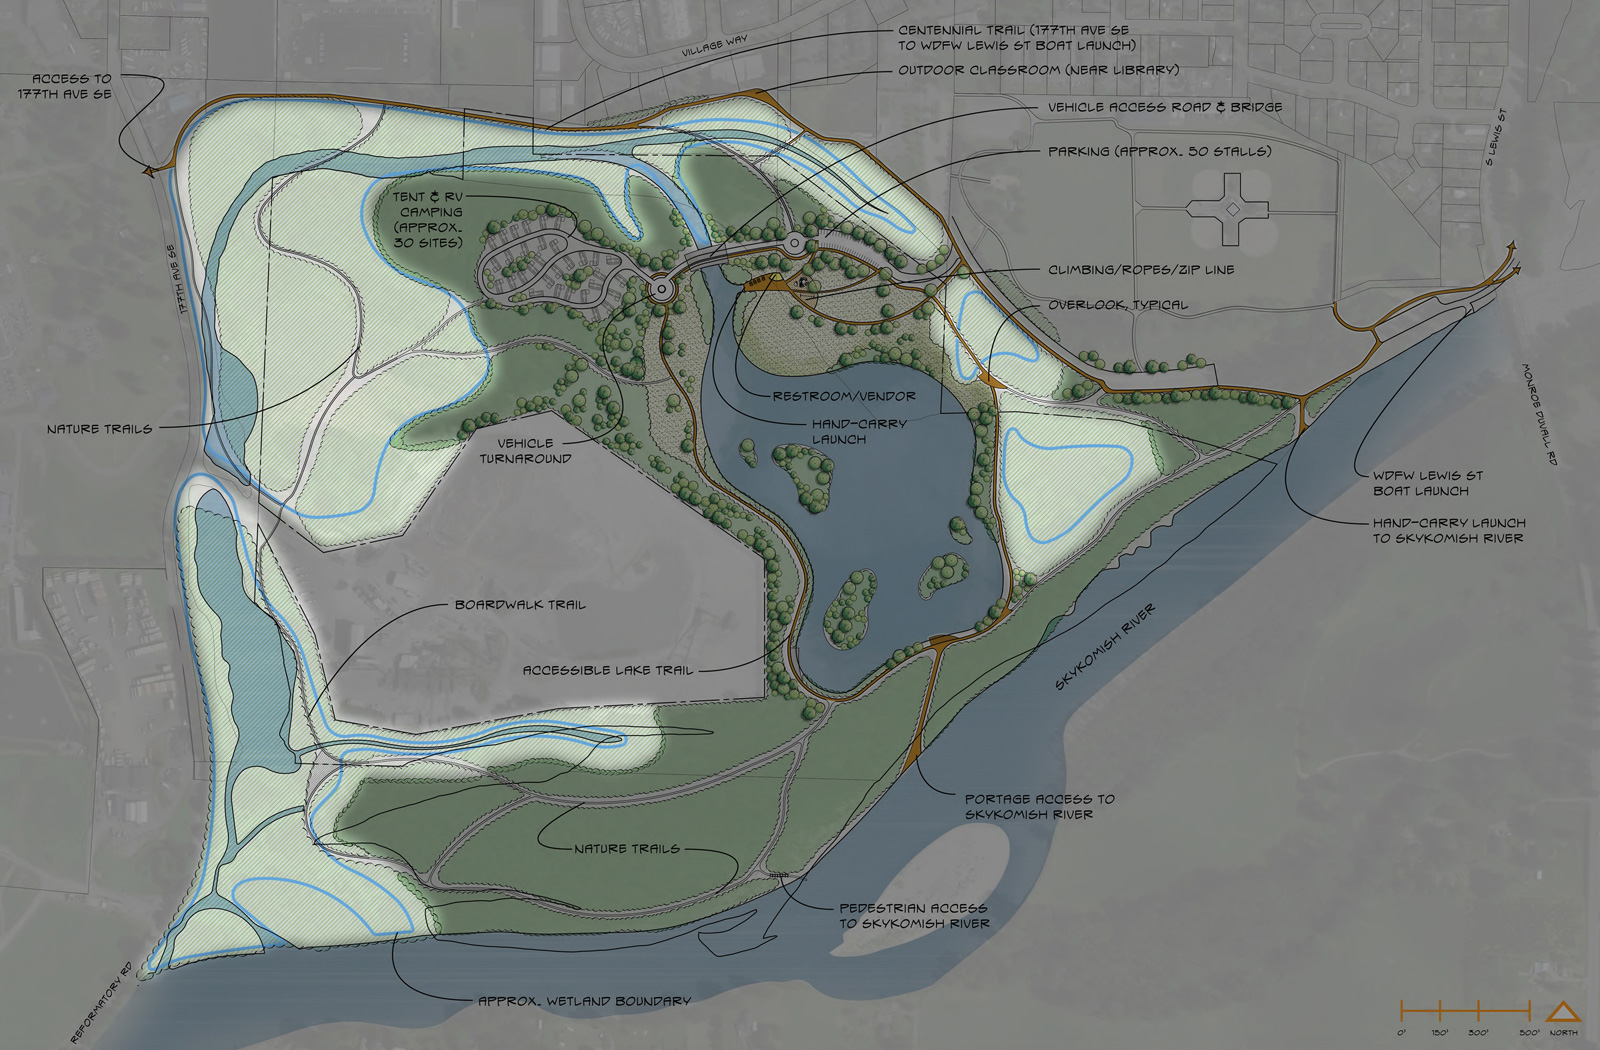 "Let's move to the <strong>wetland areas</strong> of the Cadman Site. Much of Cadman is classified as wetland, limiting the degree of development that can occur there. Regardless, there are opportunities for trails and other low-impact uses that make the wetlands more accessible for those using the site or interested in wetland functions. This concept proposes a trails network with direct connections to the uplands, interpretive and educational signs, and opportunities for extended paddling when the water is high. <a href=""https://drive.google.com/file/d/0BxrVDQaWMHGdaGNHdkpzWktHbjg/view?usp=sharing"" rel=""nofollow"" target=""_blank"">Click here </a>to see an enlarged view in a new window. <br><br>"